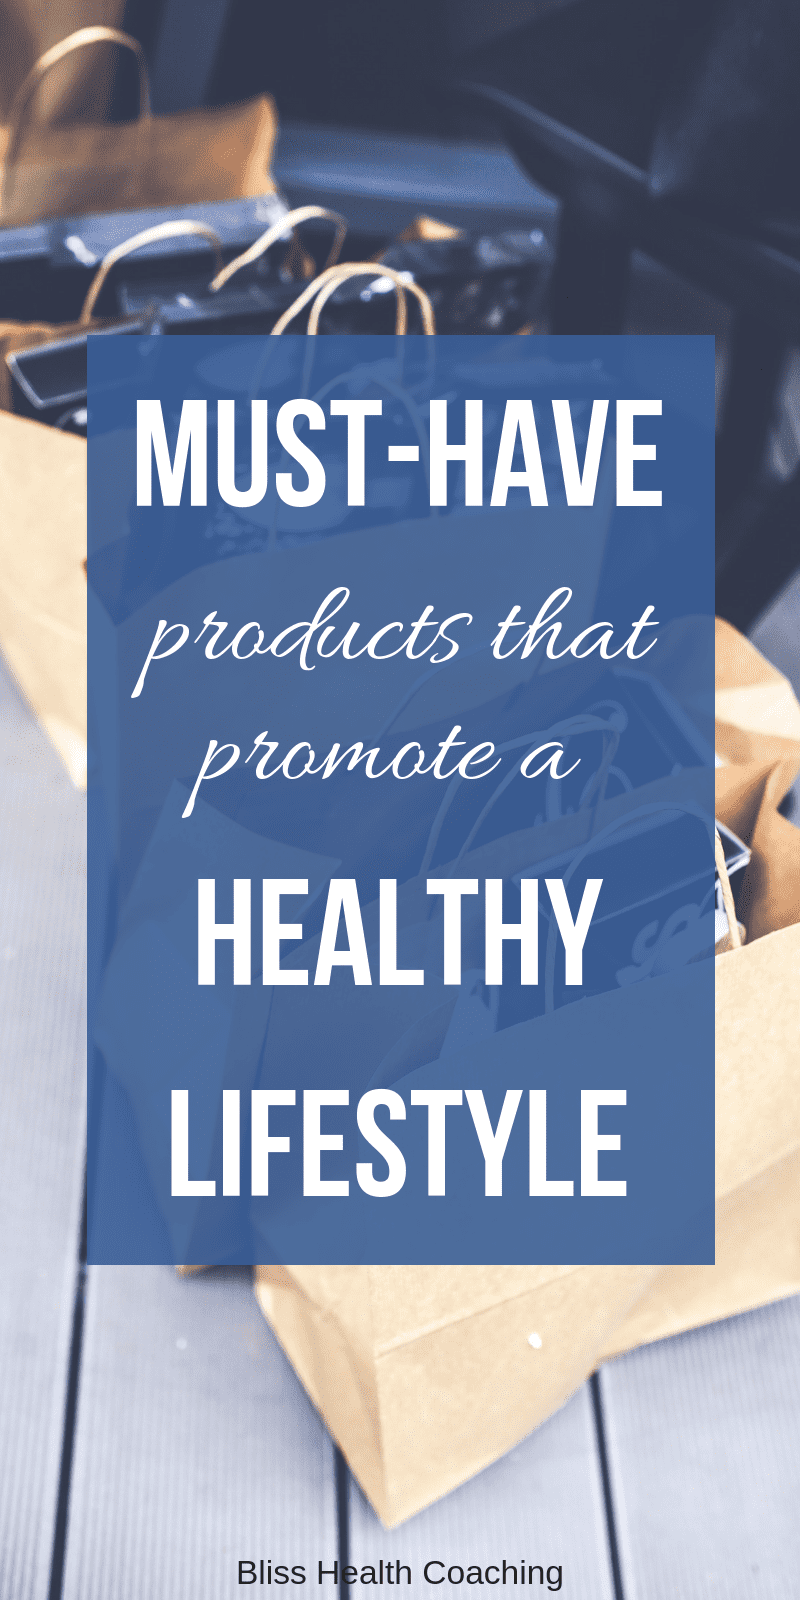 Check out these Must-Have products that make living healthy easy and fun. Save time cooking, cleaning and start trying new green toxin-free products. #healthproducts #nontoxic